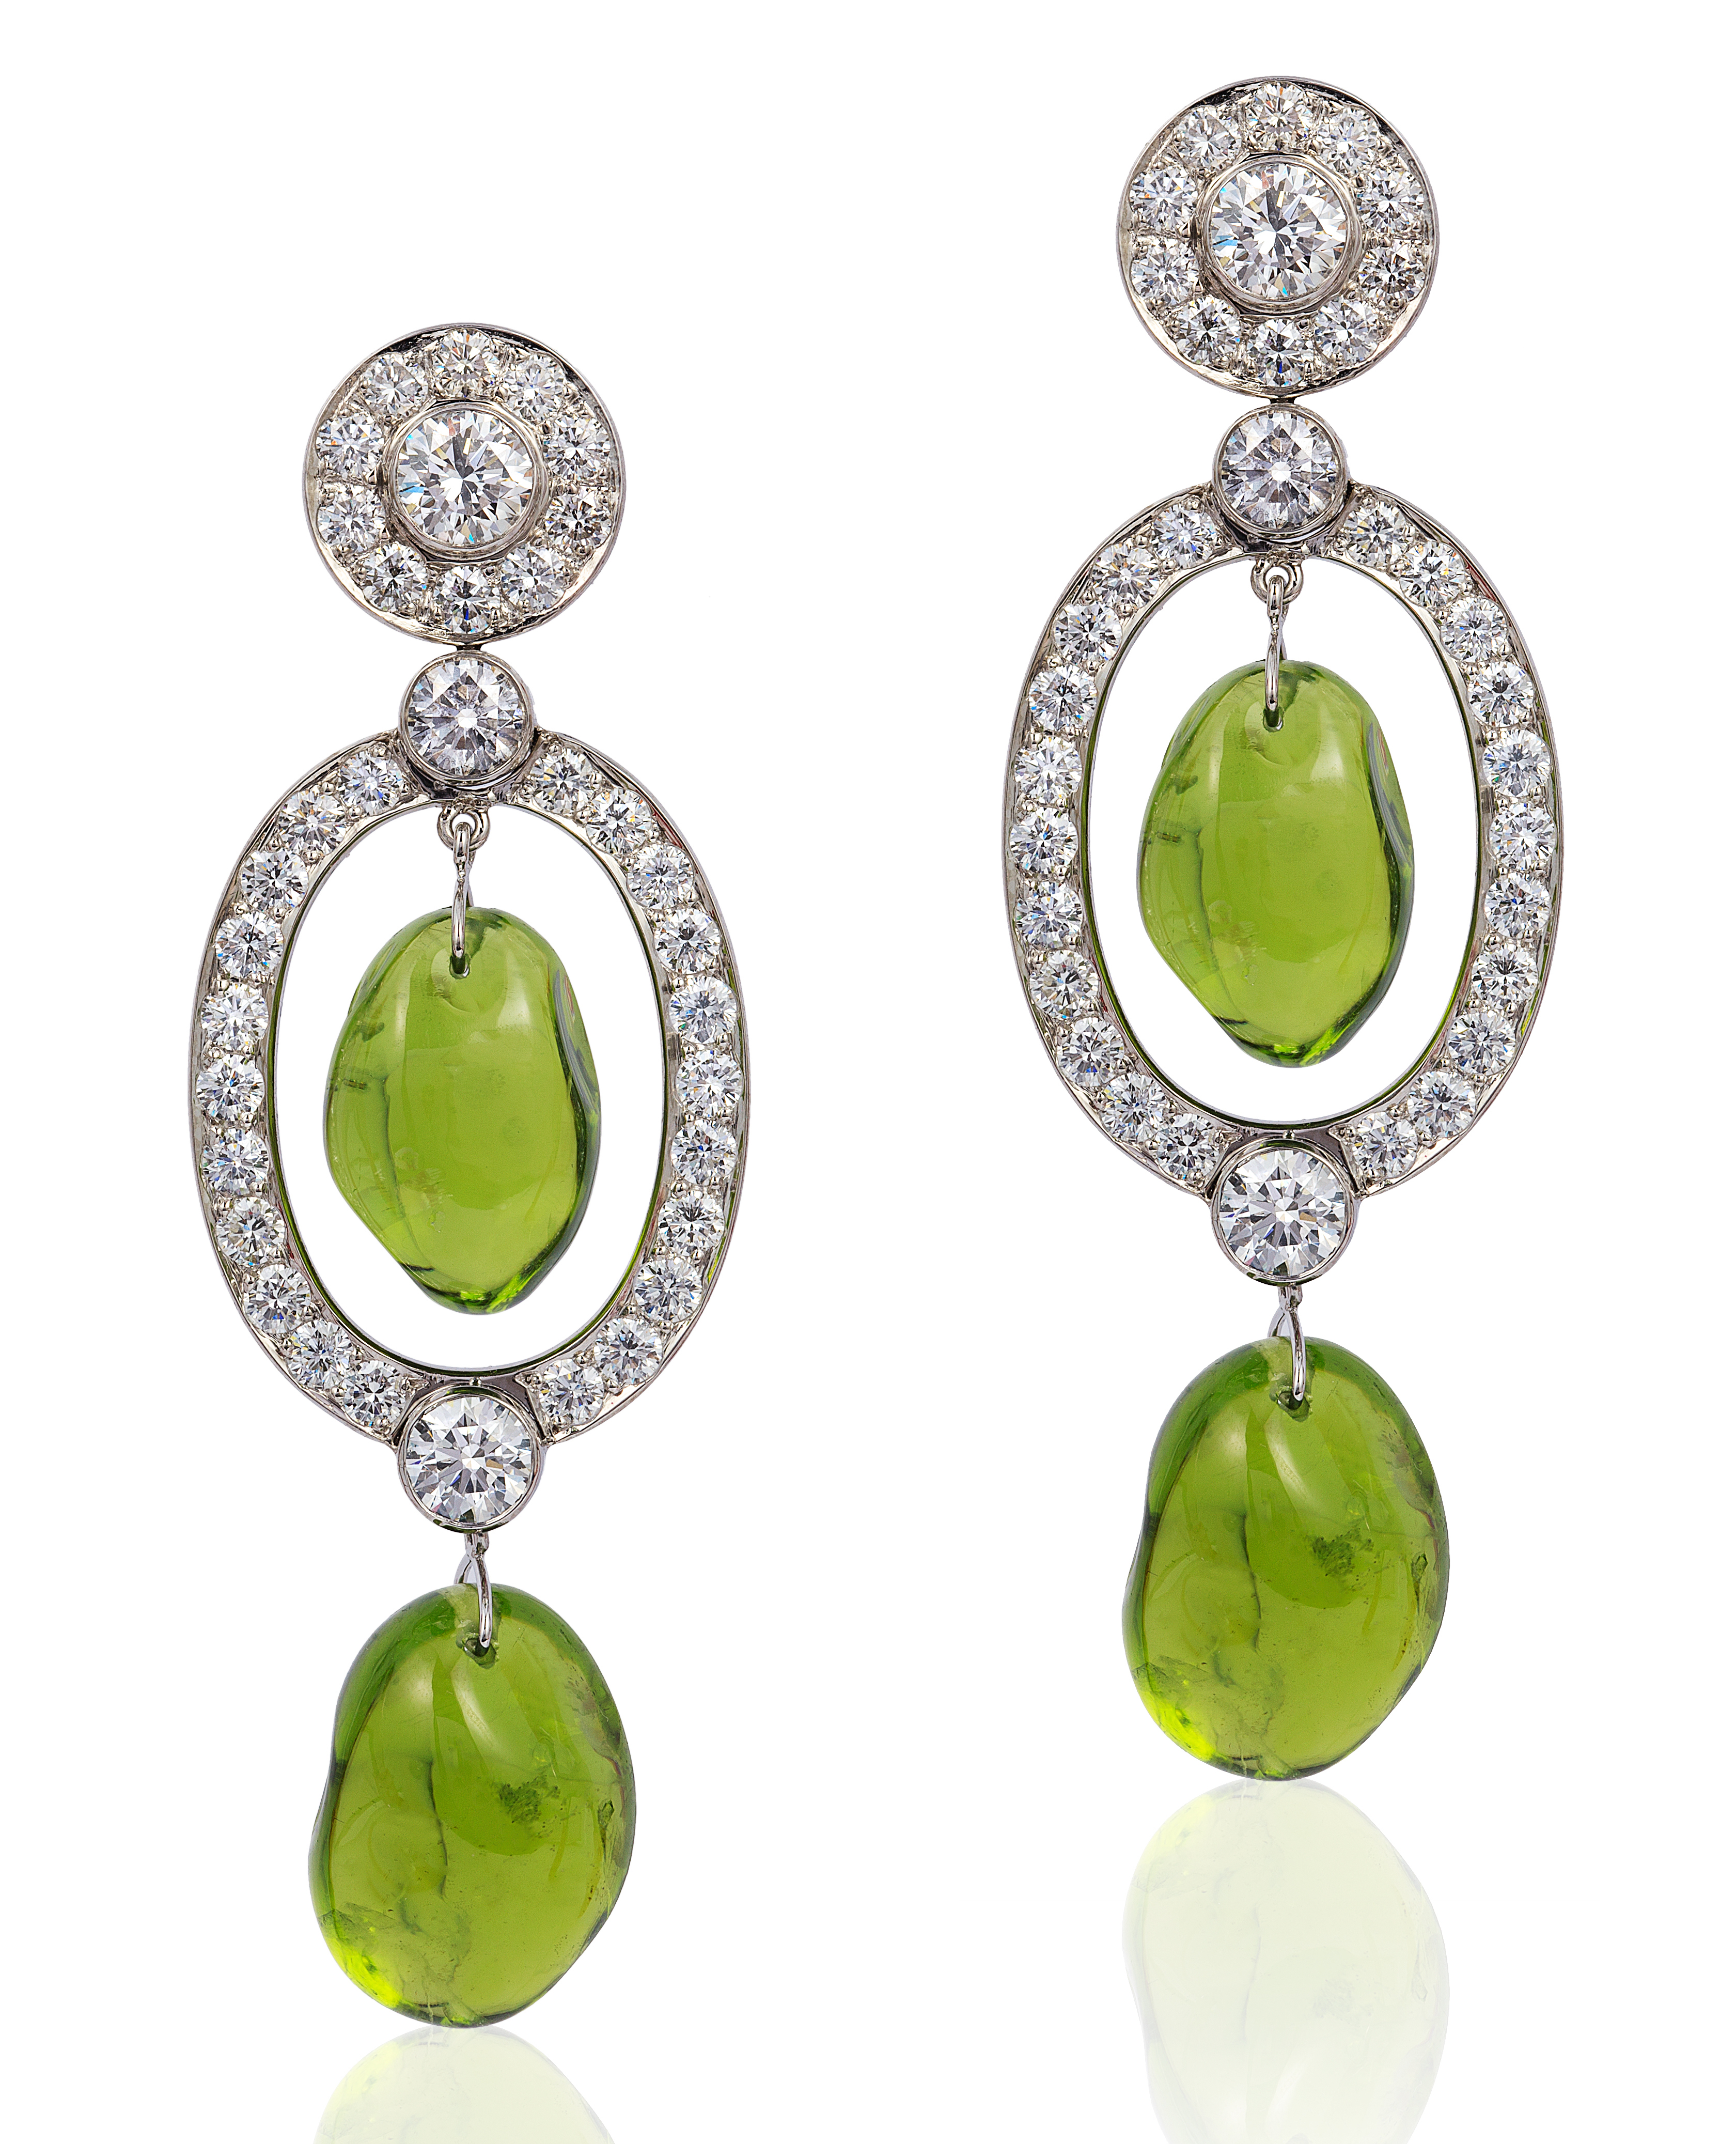 Goshwara G-One tumbled peridot earrings #BRITTSPICK | JCK On Your Market